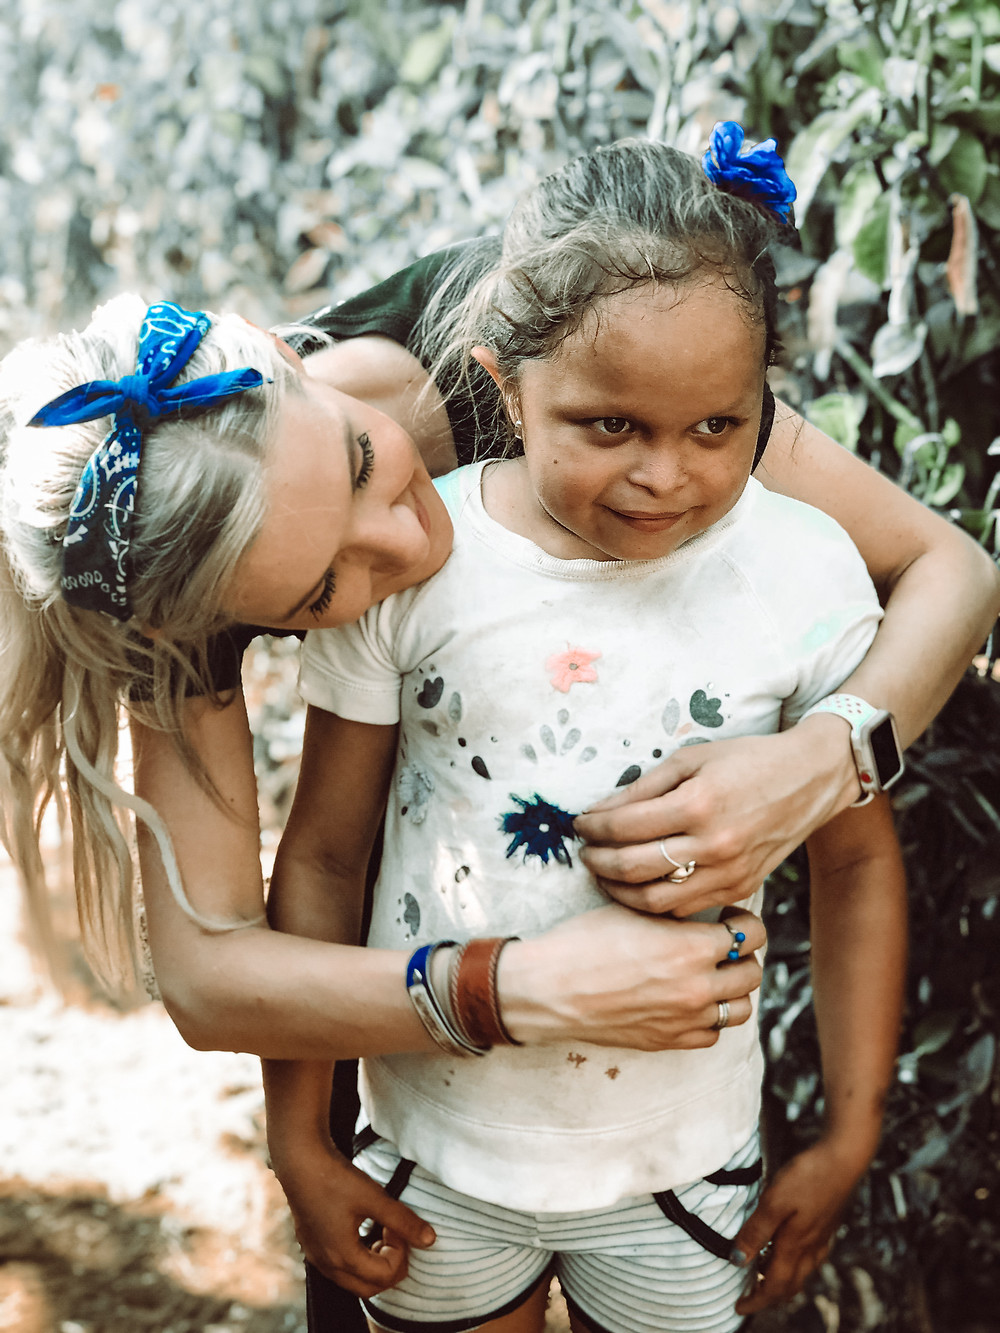 Humanitarian Amanda Sowards on La Chureca Mission Trip